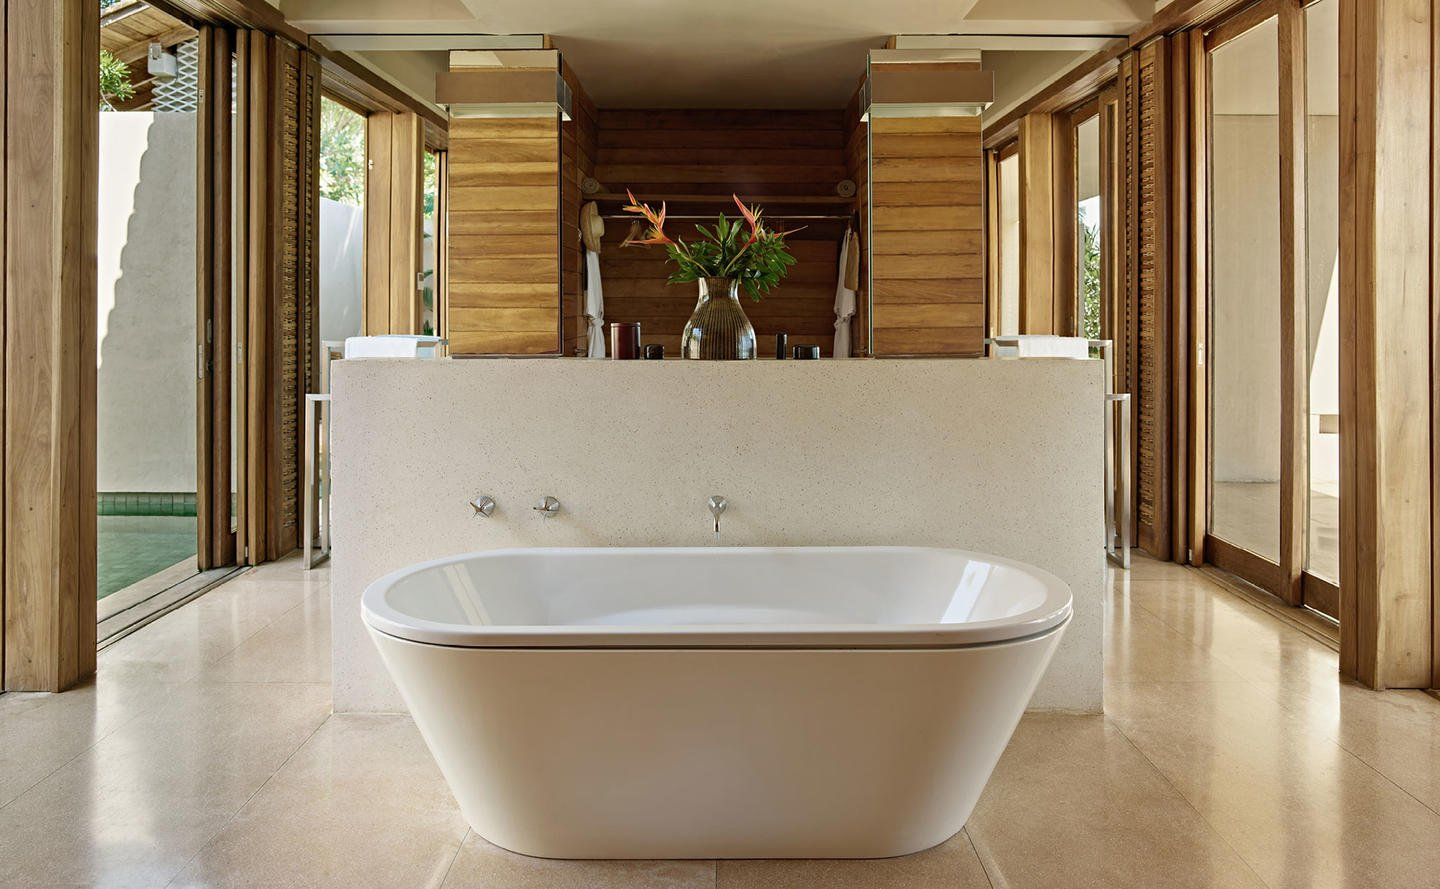 Bathroom, Garden Pool Suite - Amanwella, Sri Lanka